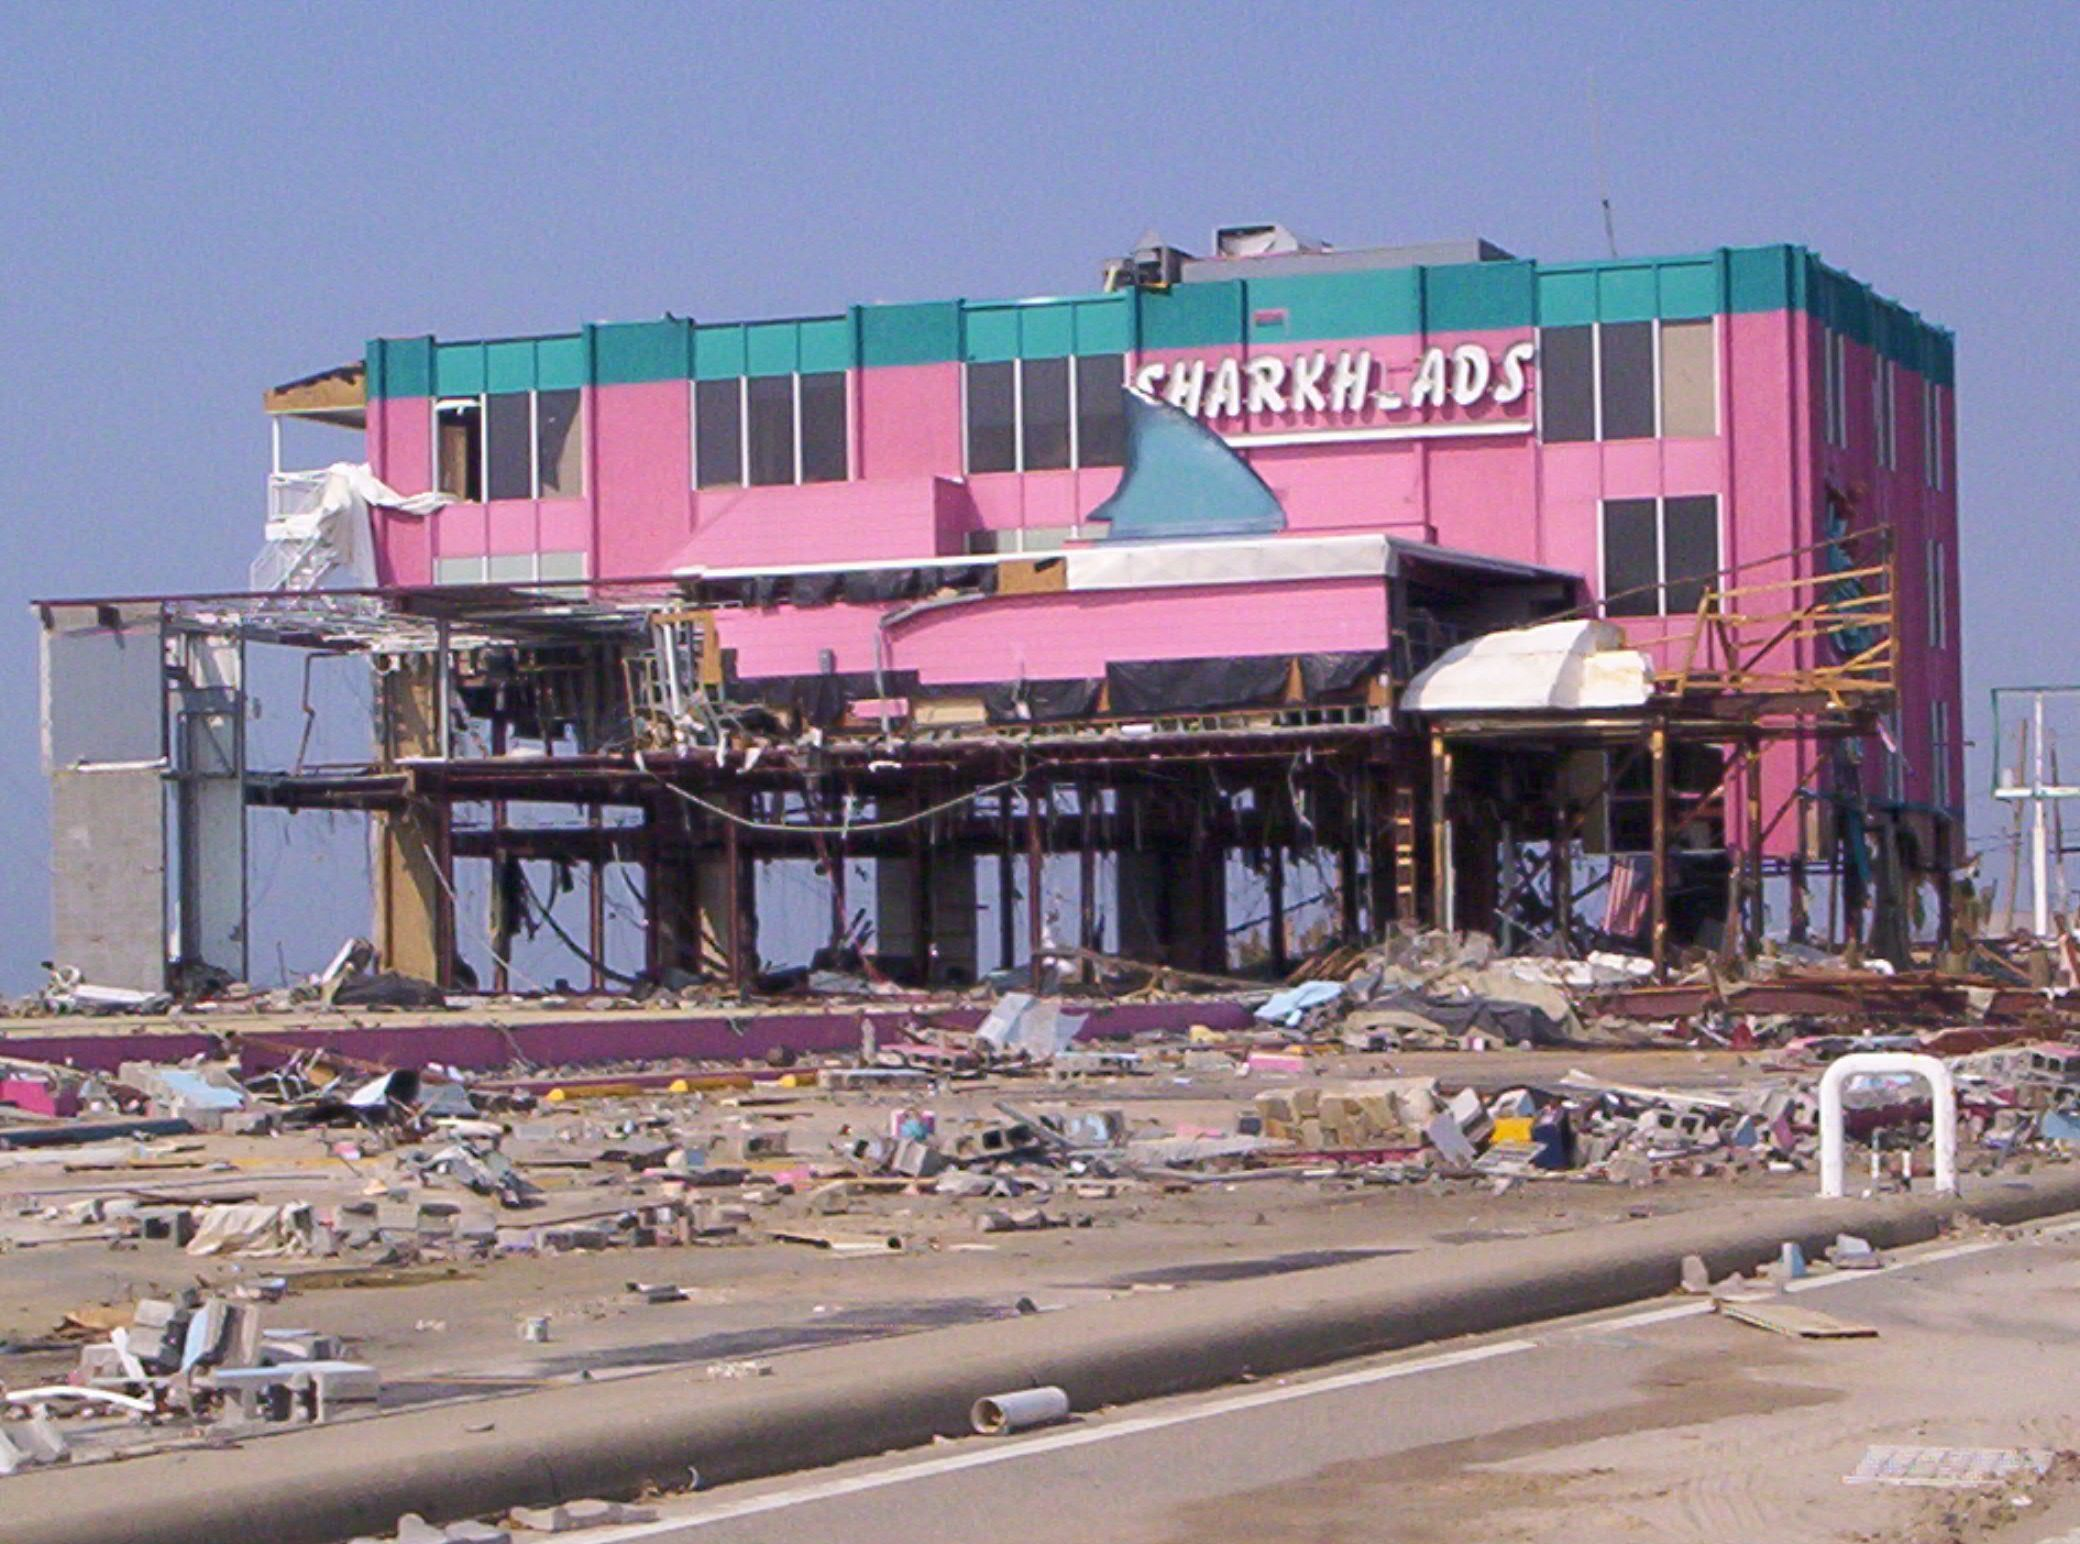 best images about hurricane katrina emergency hurricane katrina destroyed sharkheads biloxi ms local favorite tourist spot